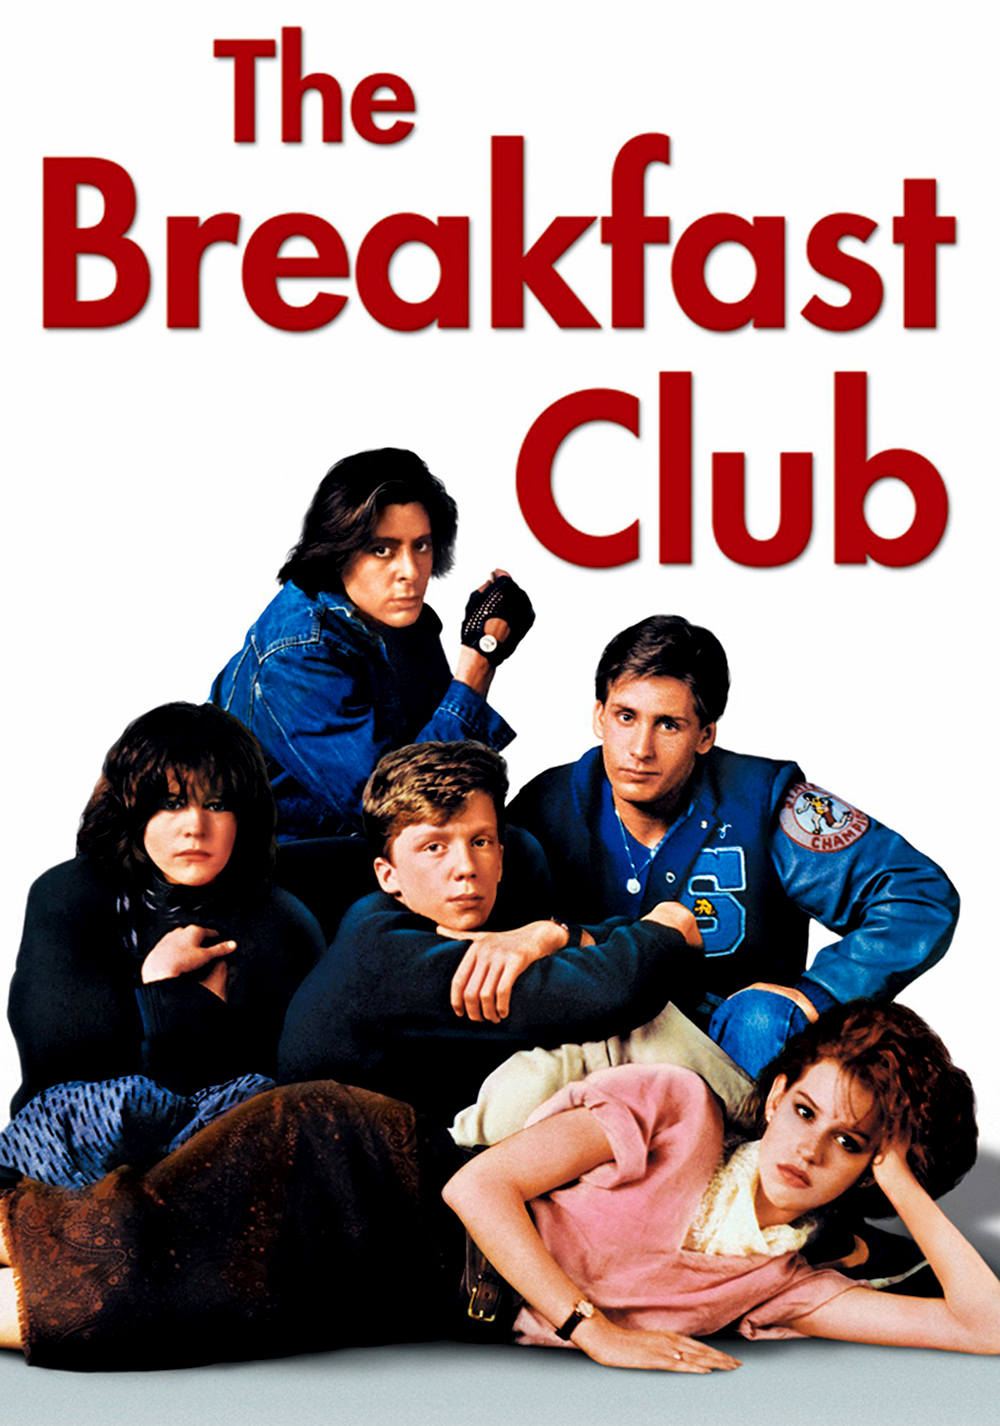 """The Breakfast Club"""" Movie Review."""